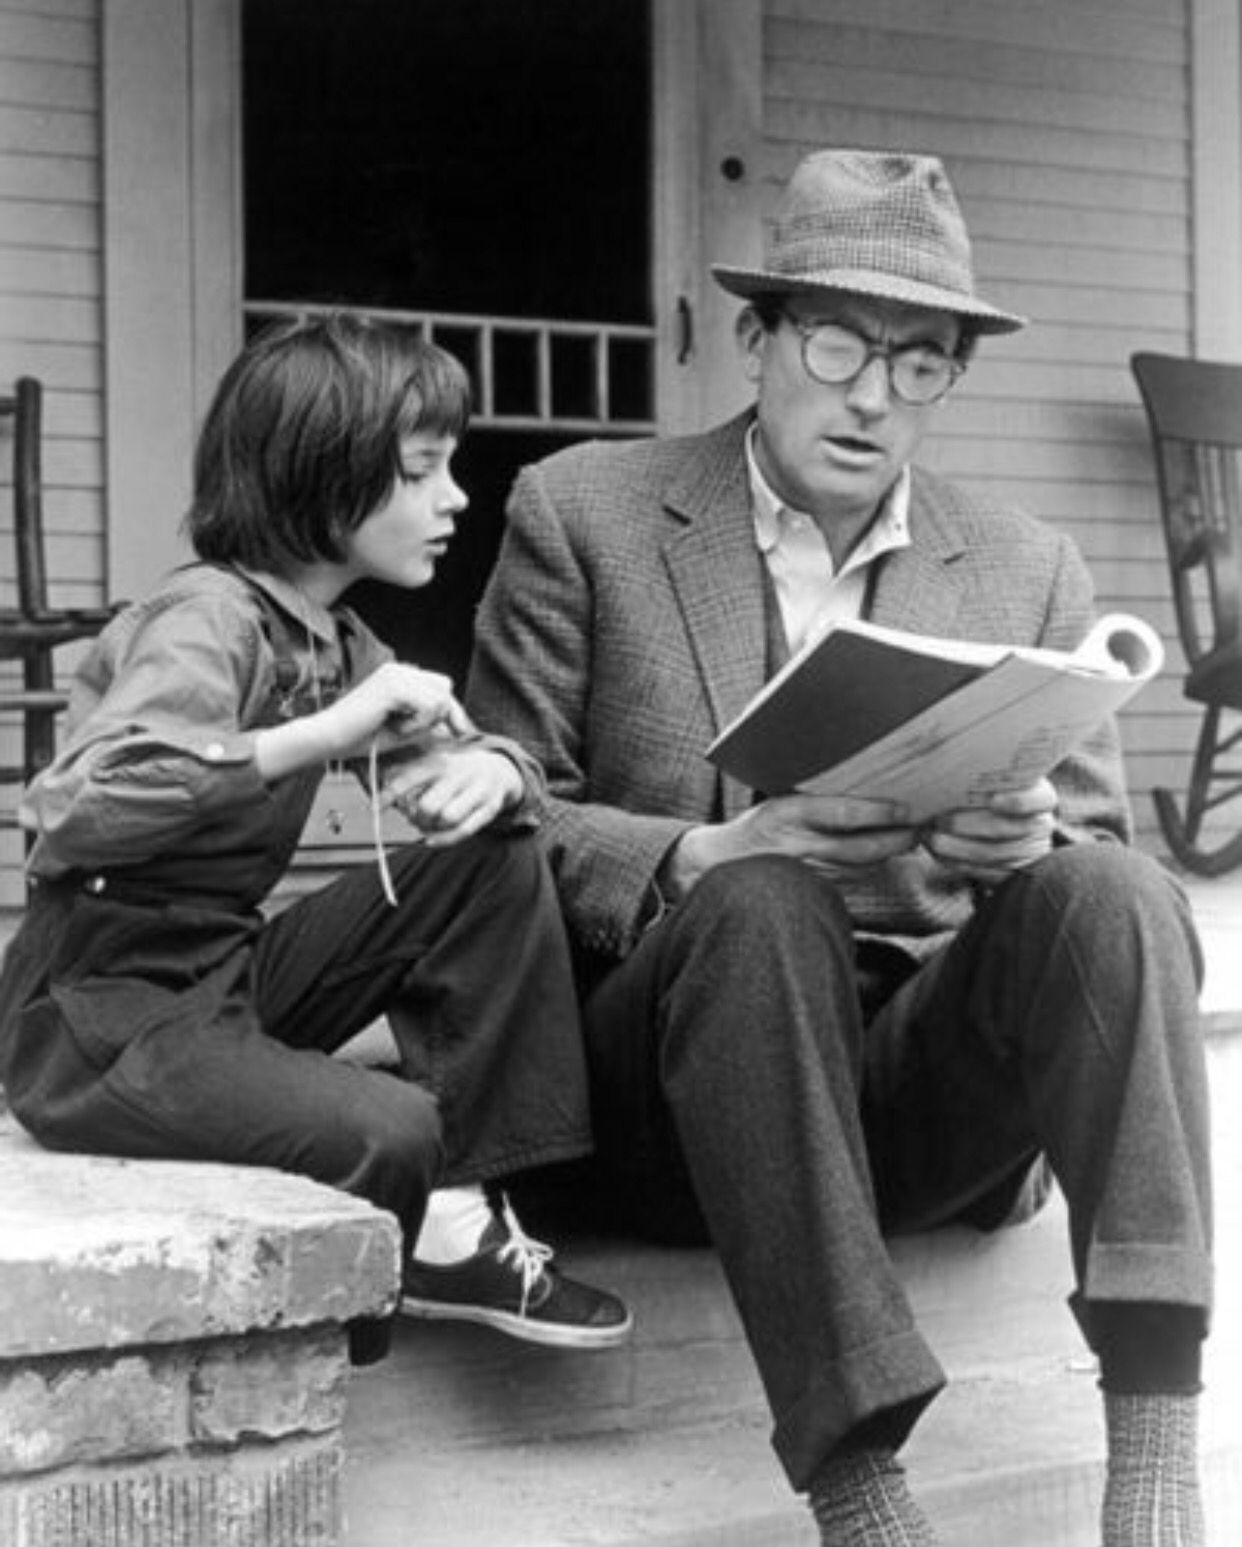 atticus finch and southern liberalism Atticus finch, harper lee's mythic southern liberal, wisely shot the rabid dog before it could infect jem, scout, calpurnia or the other town-folks of maycomb with a lethal disease.